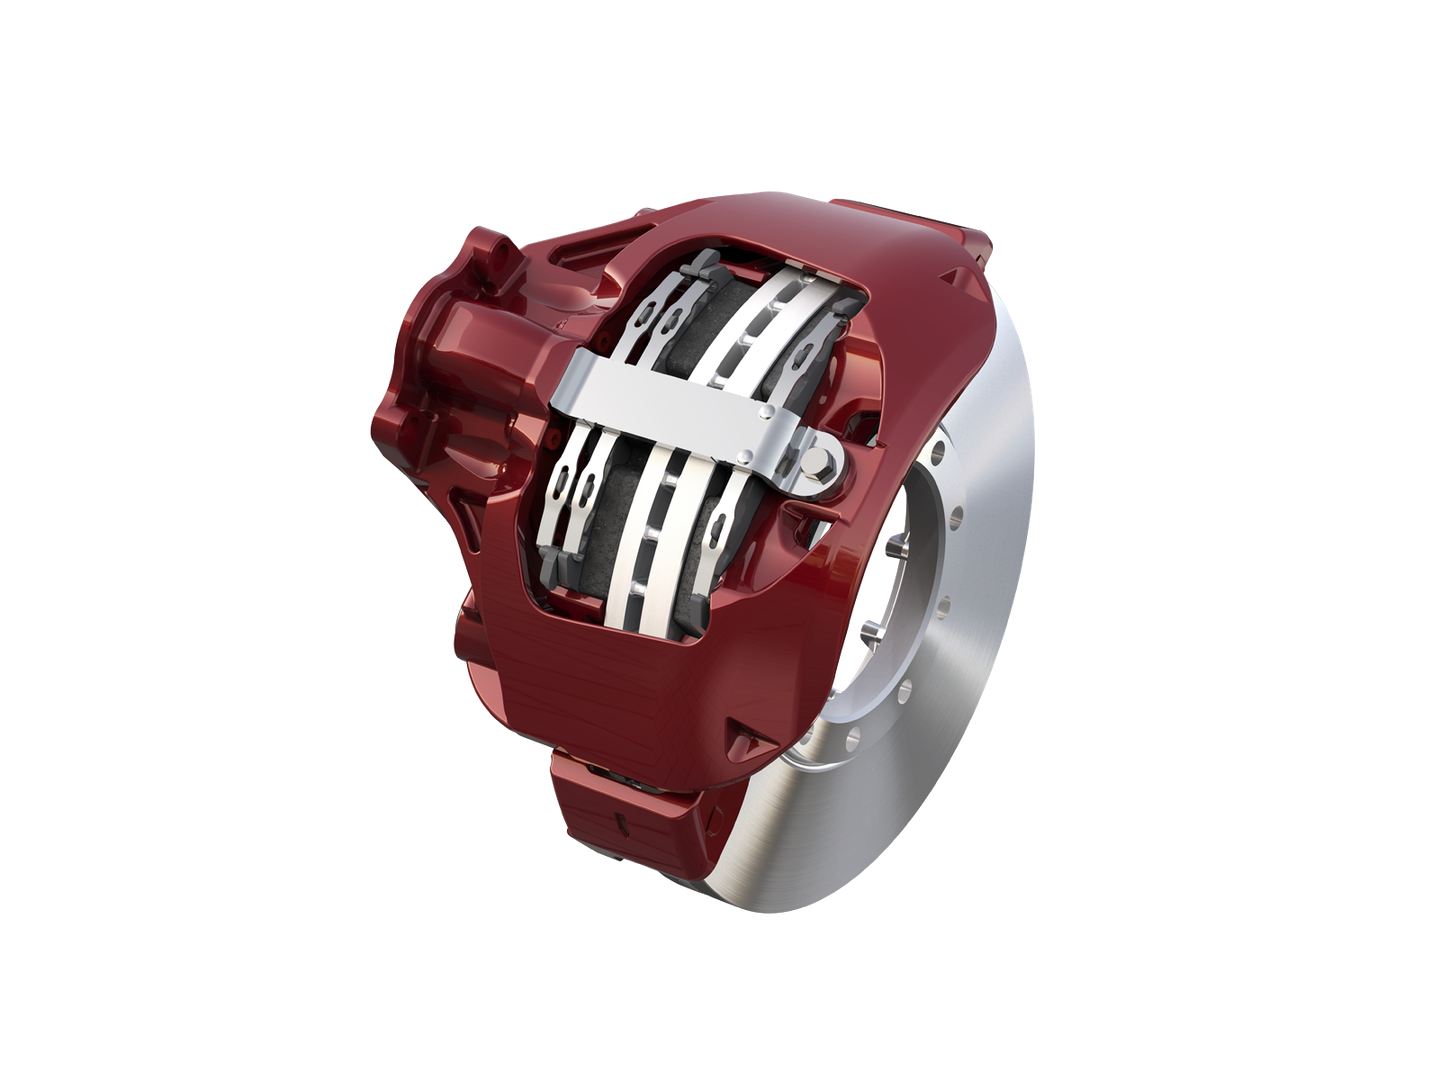 The single-piston EX+LS air disc brake weighs 71 lbs. (caliper and pads) making it Meritor's lightest ADB. The MA9300 N-level proprietary friction complies with 2025 Environmental Protection Agency standards for copper content.